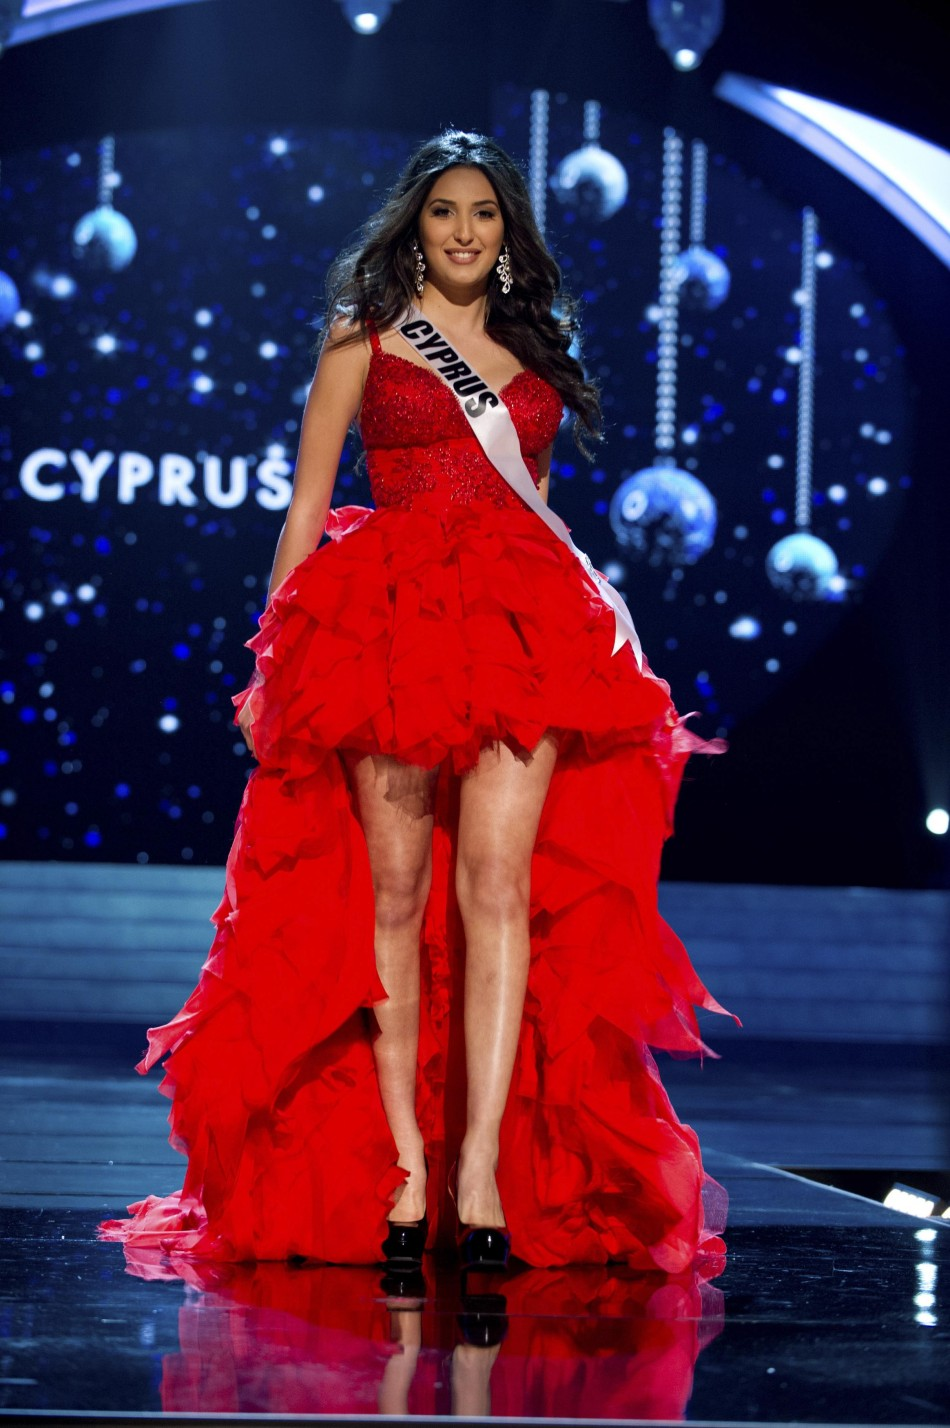 Miss Cyprus 2012 Yiannakou competes in an evening gown of her choice during the Evening Gown Competition of the 2012 Miss Universe Presentation Show in Las Vegas